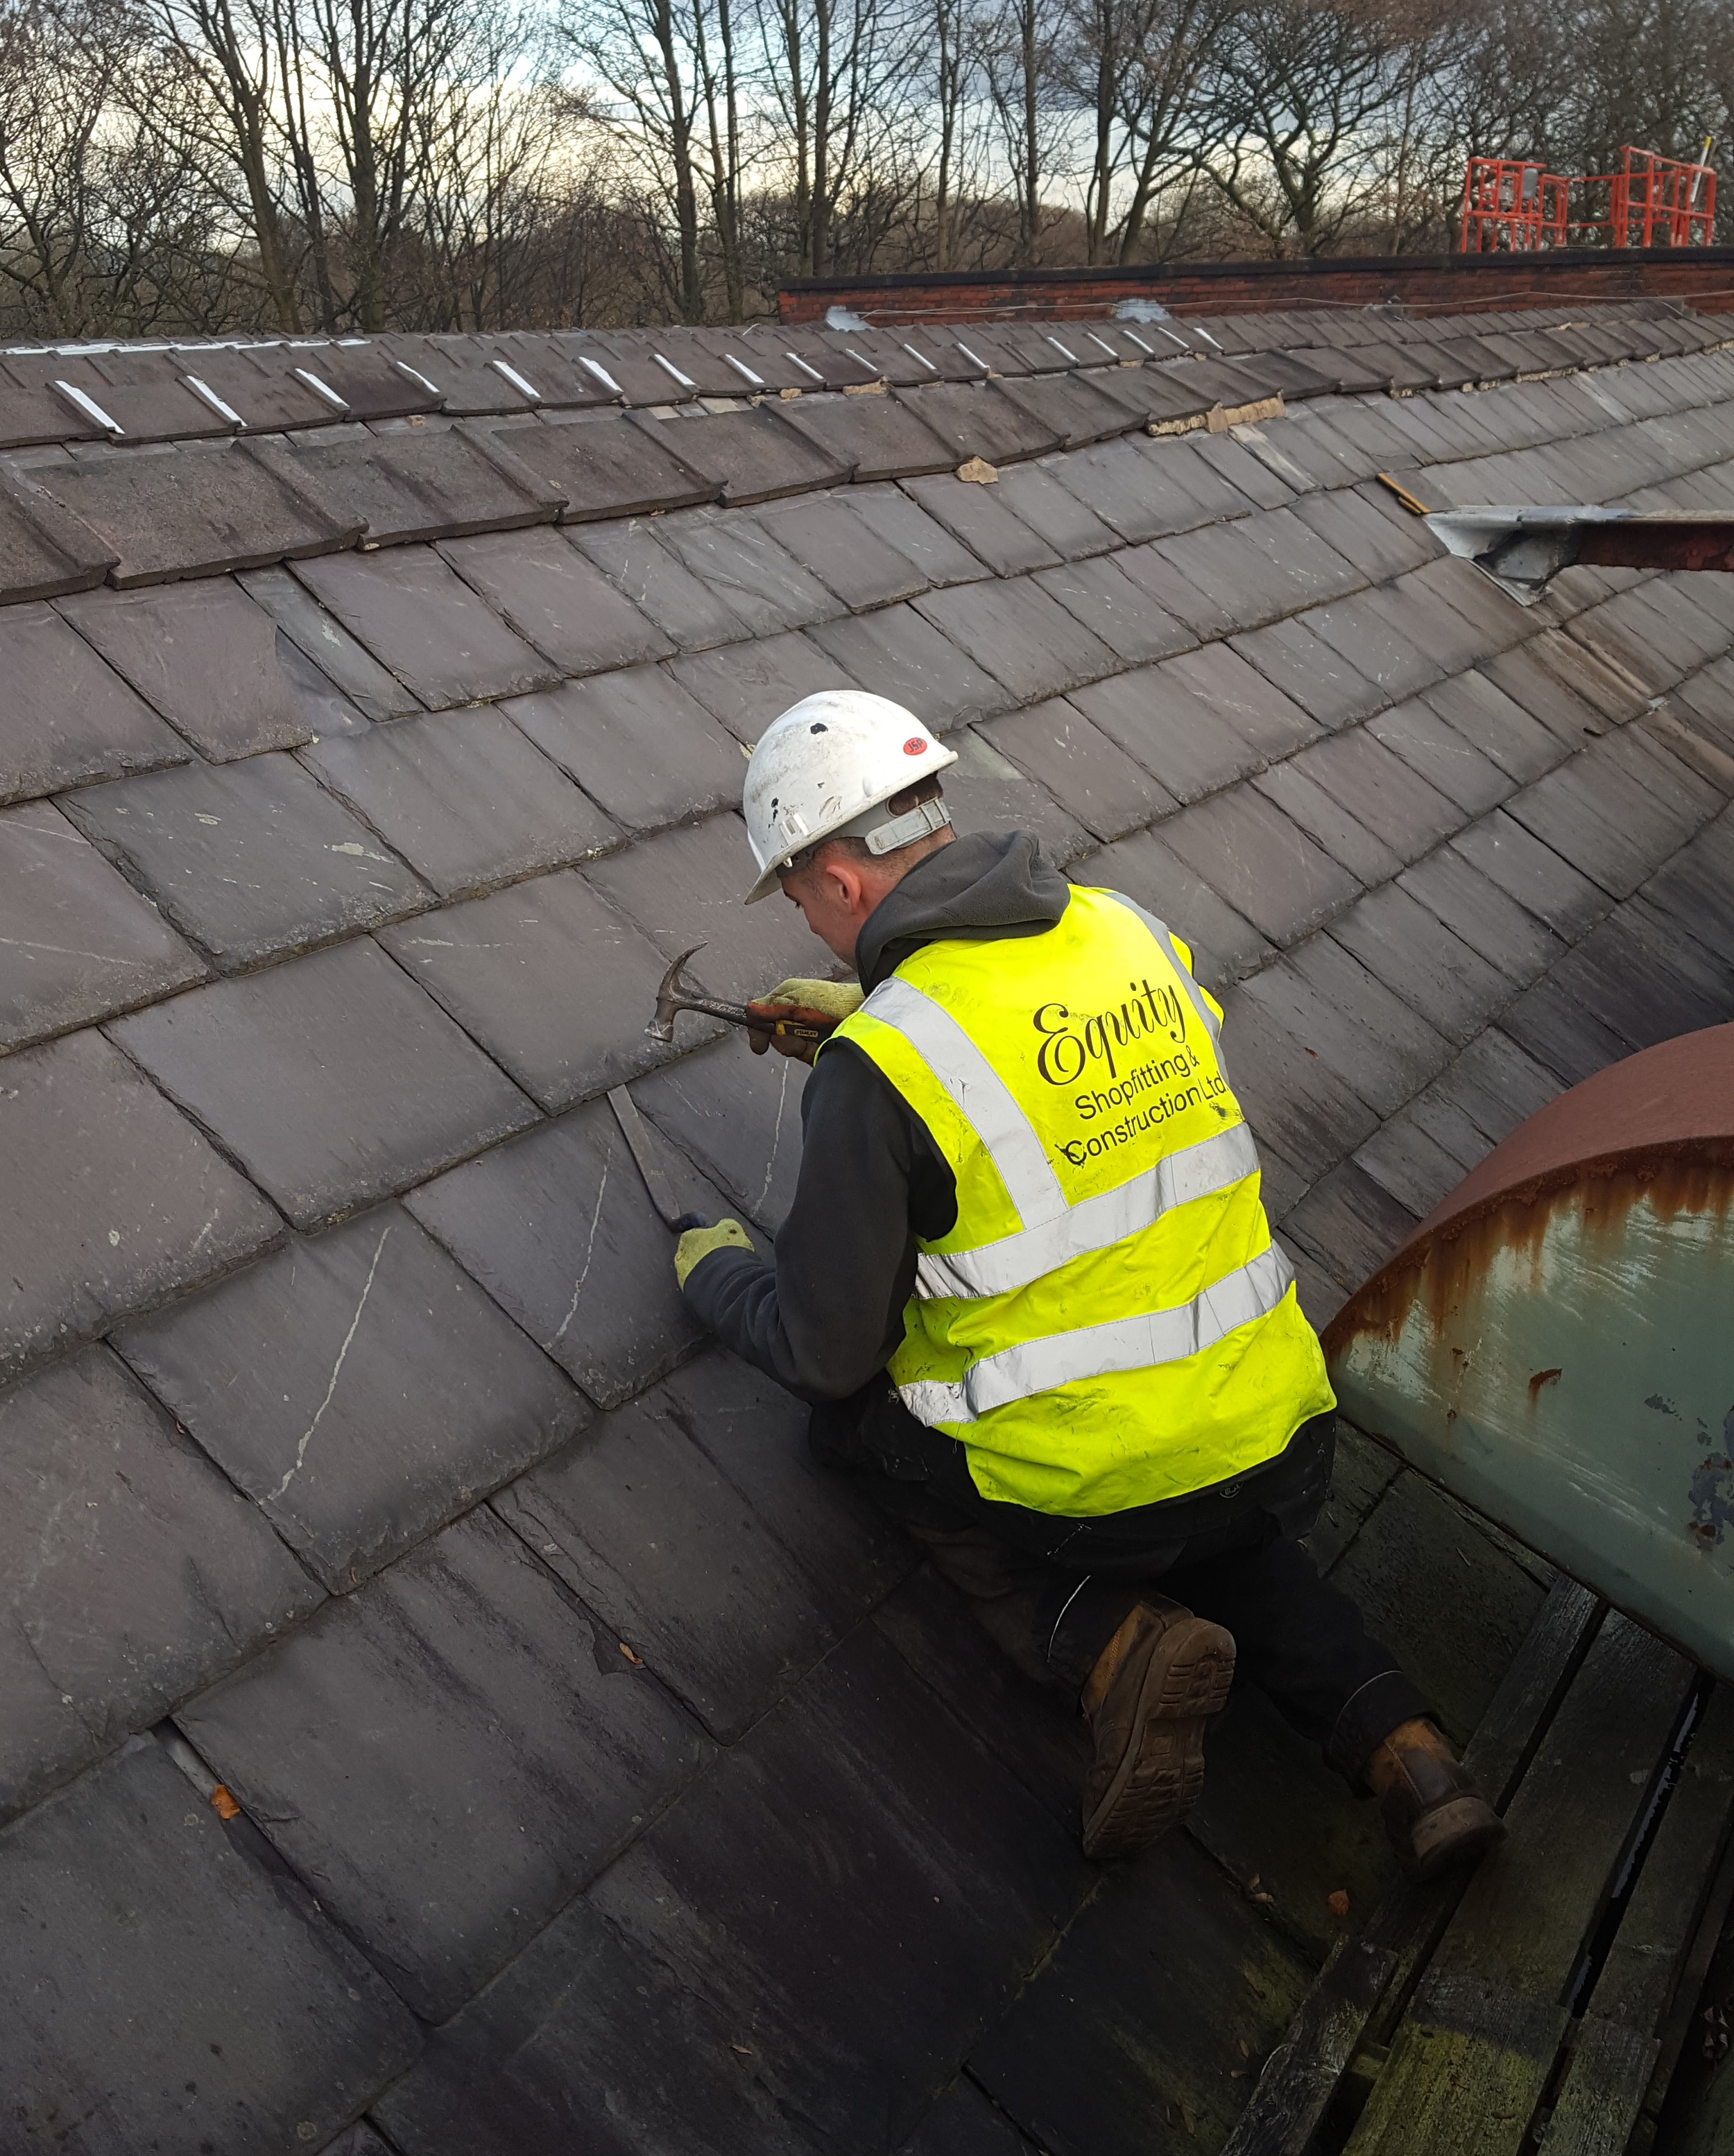 A roofer working on a slate roof.